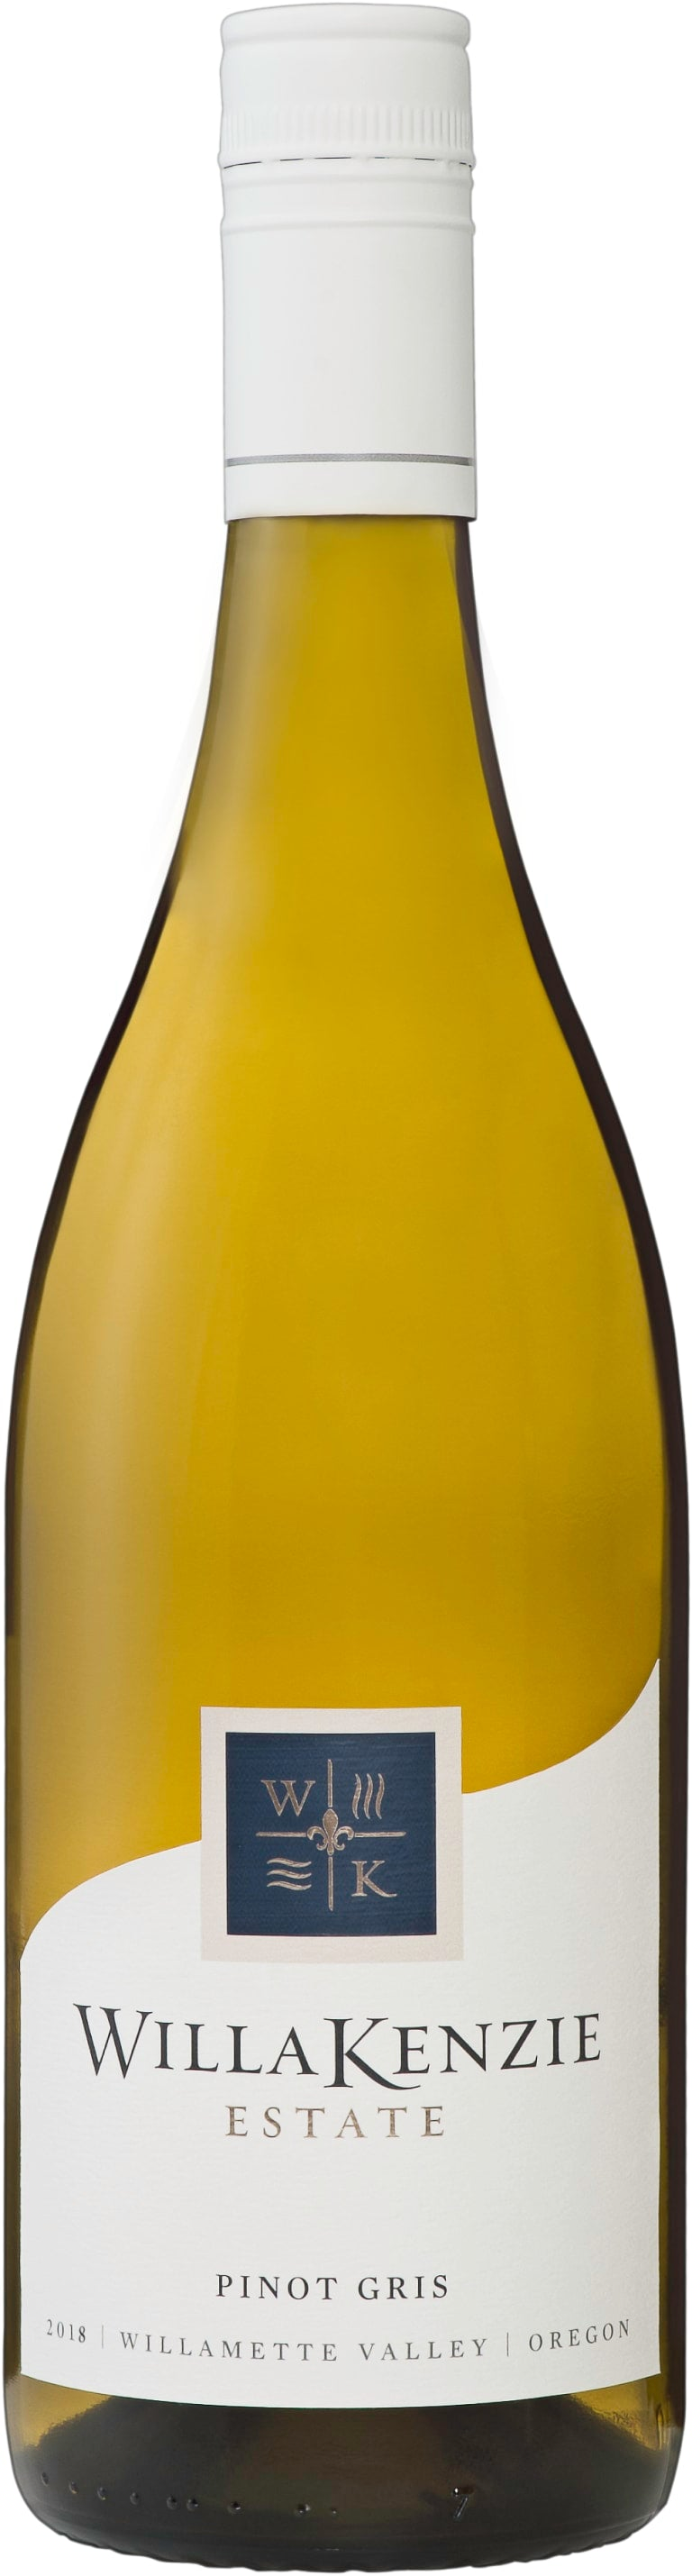 WillaKenzie Estate Pinot Gris 2018